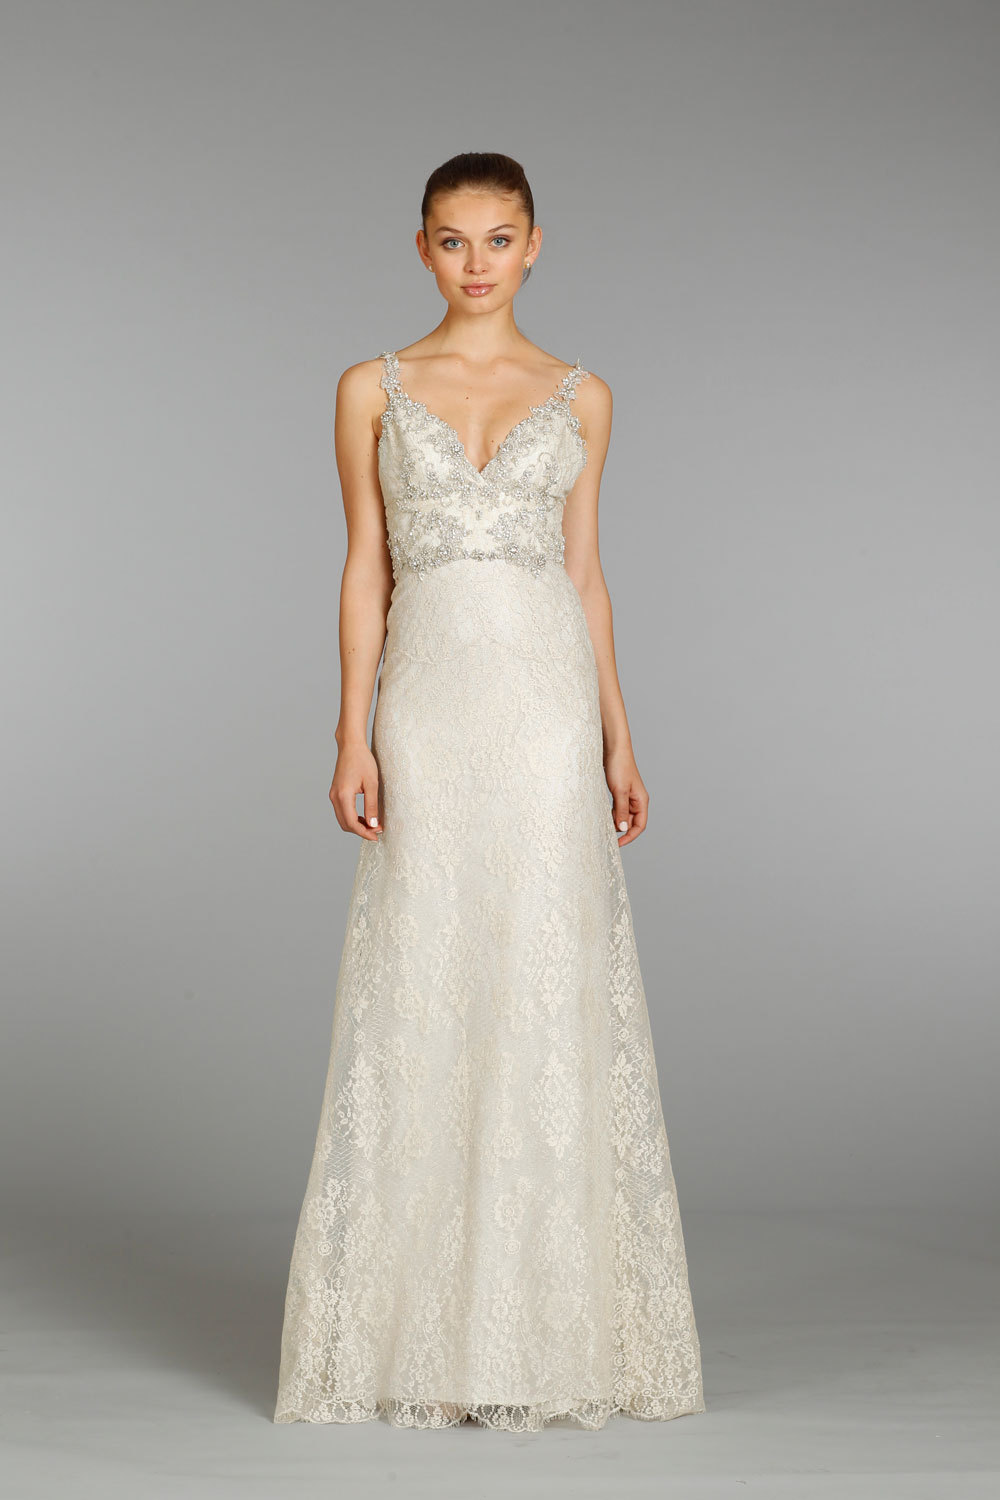 Lazaro wedding dress fall 2013 bridal 3361 for Where to buy lazaro wedding dresses